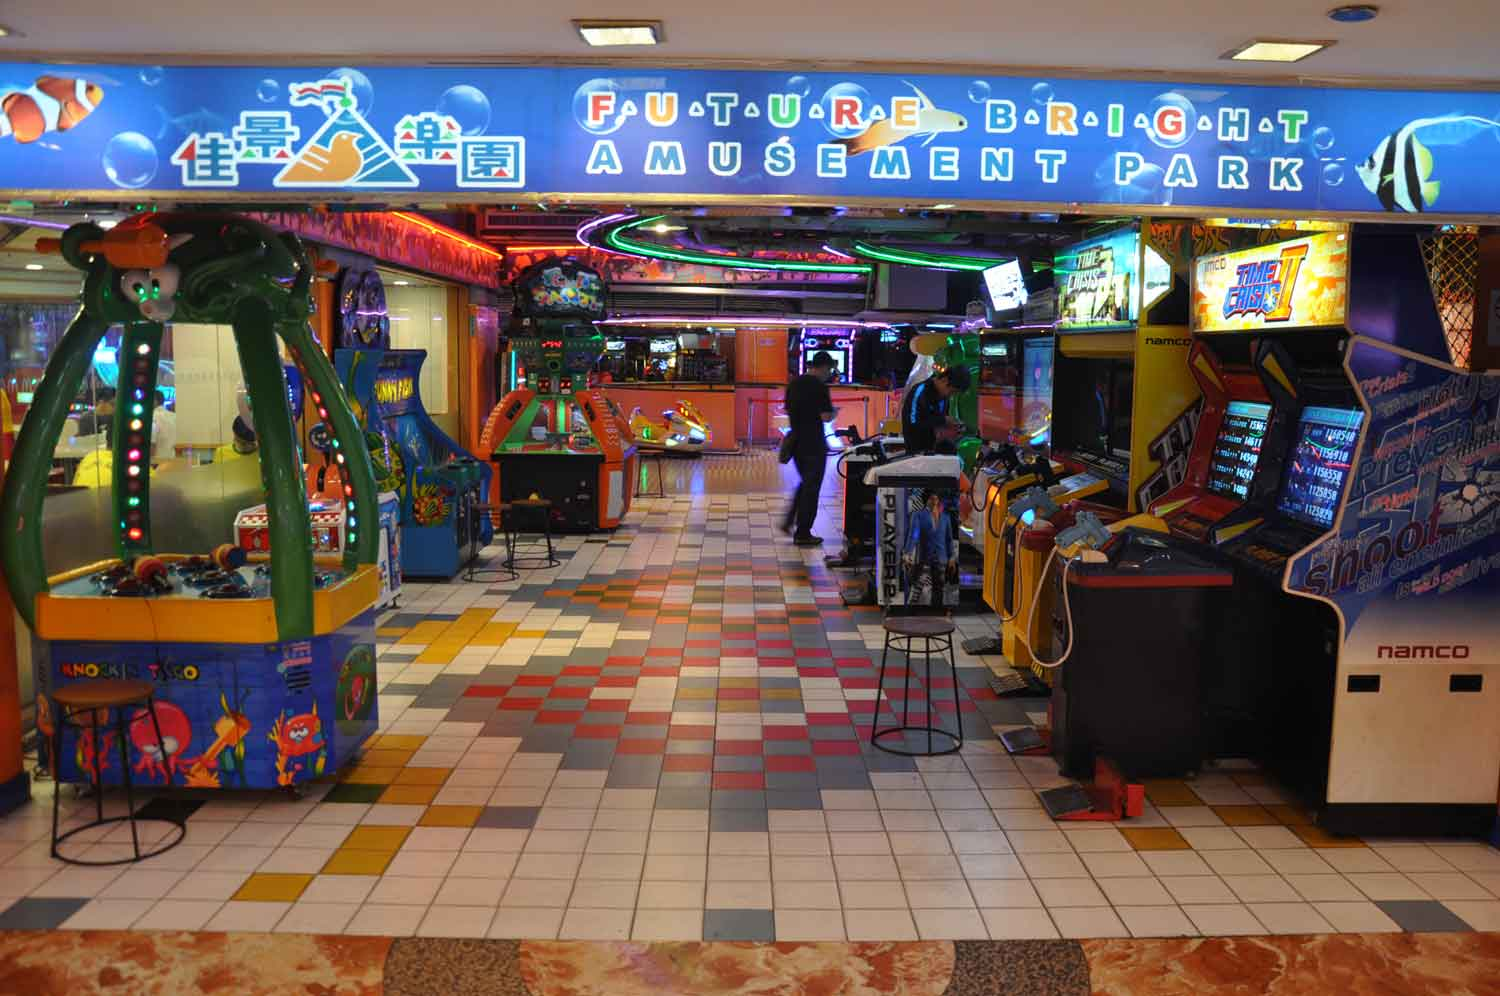 Future Bright Amusement Park Macau arcade